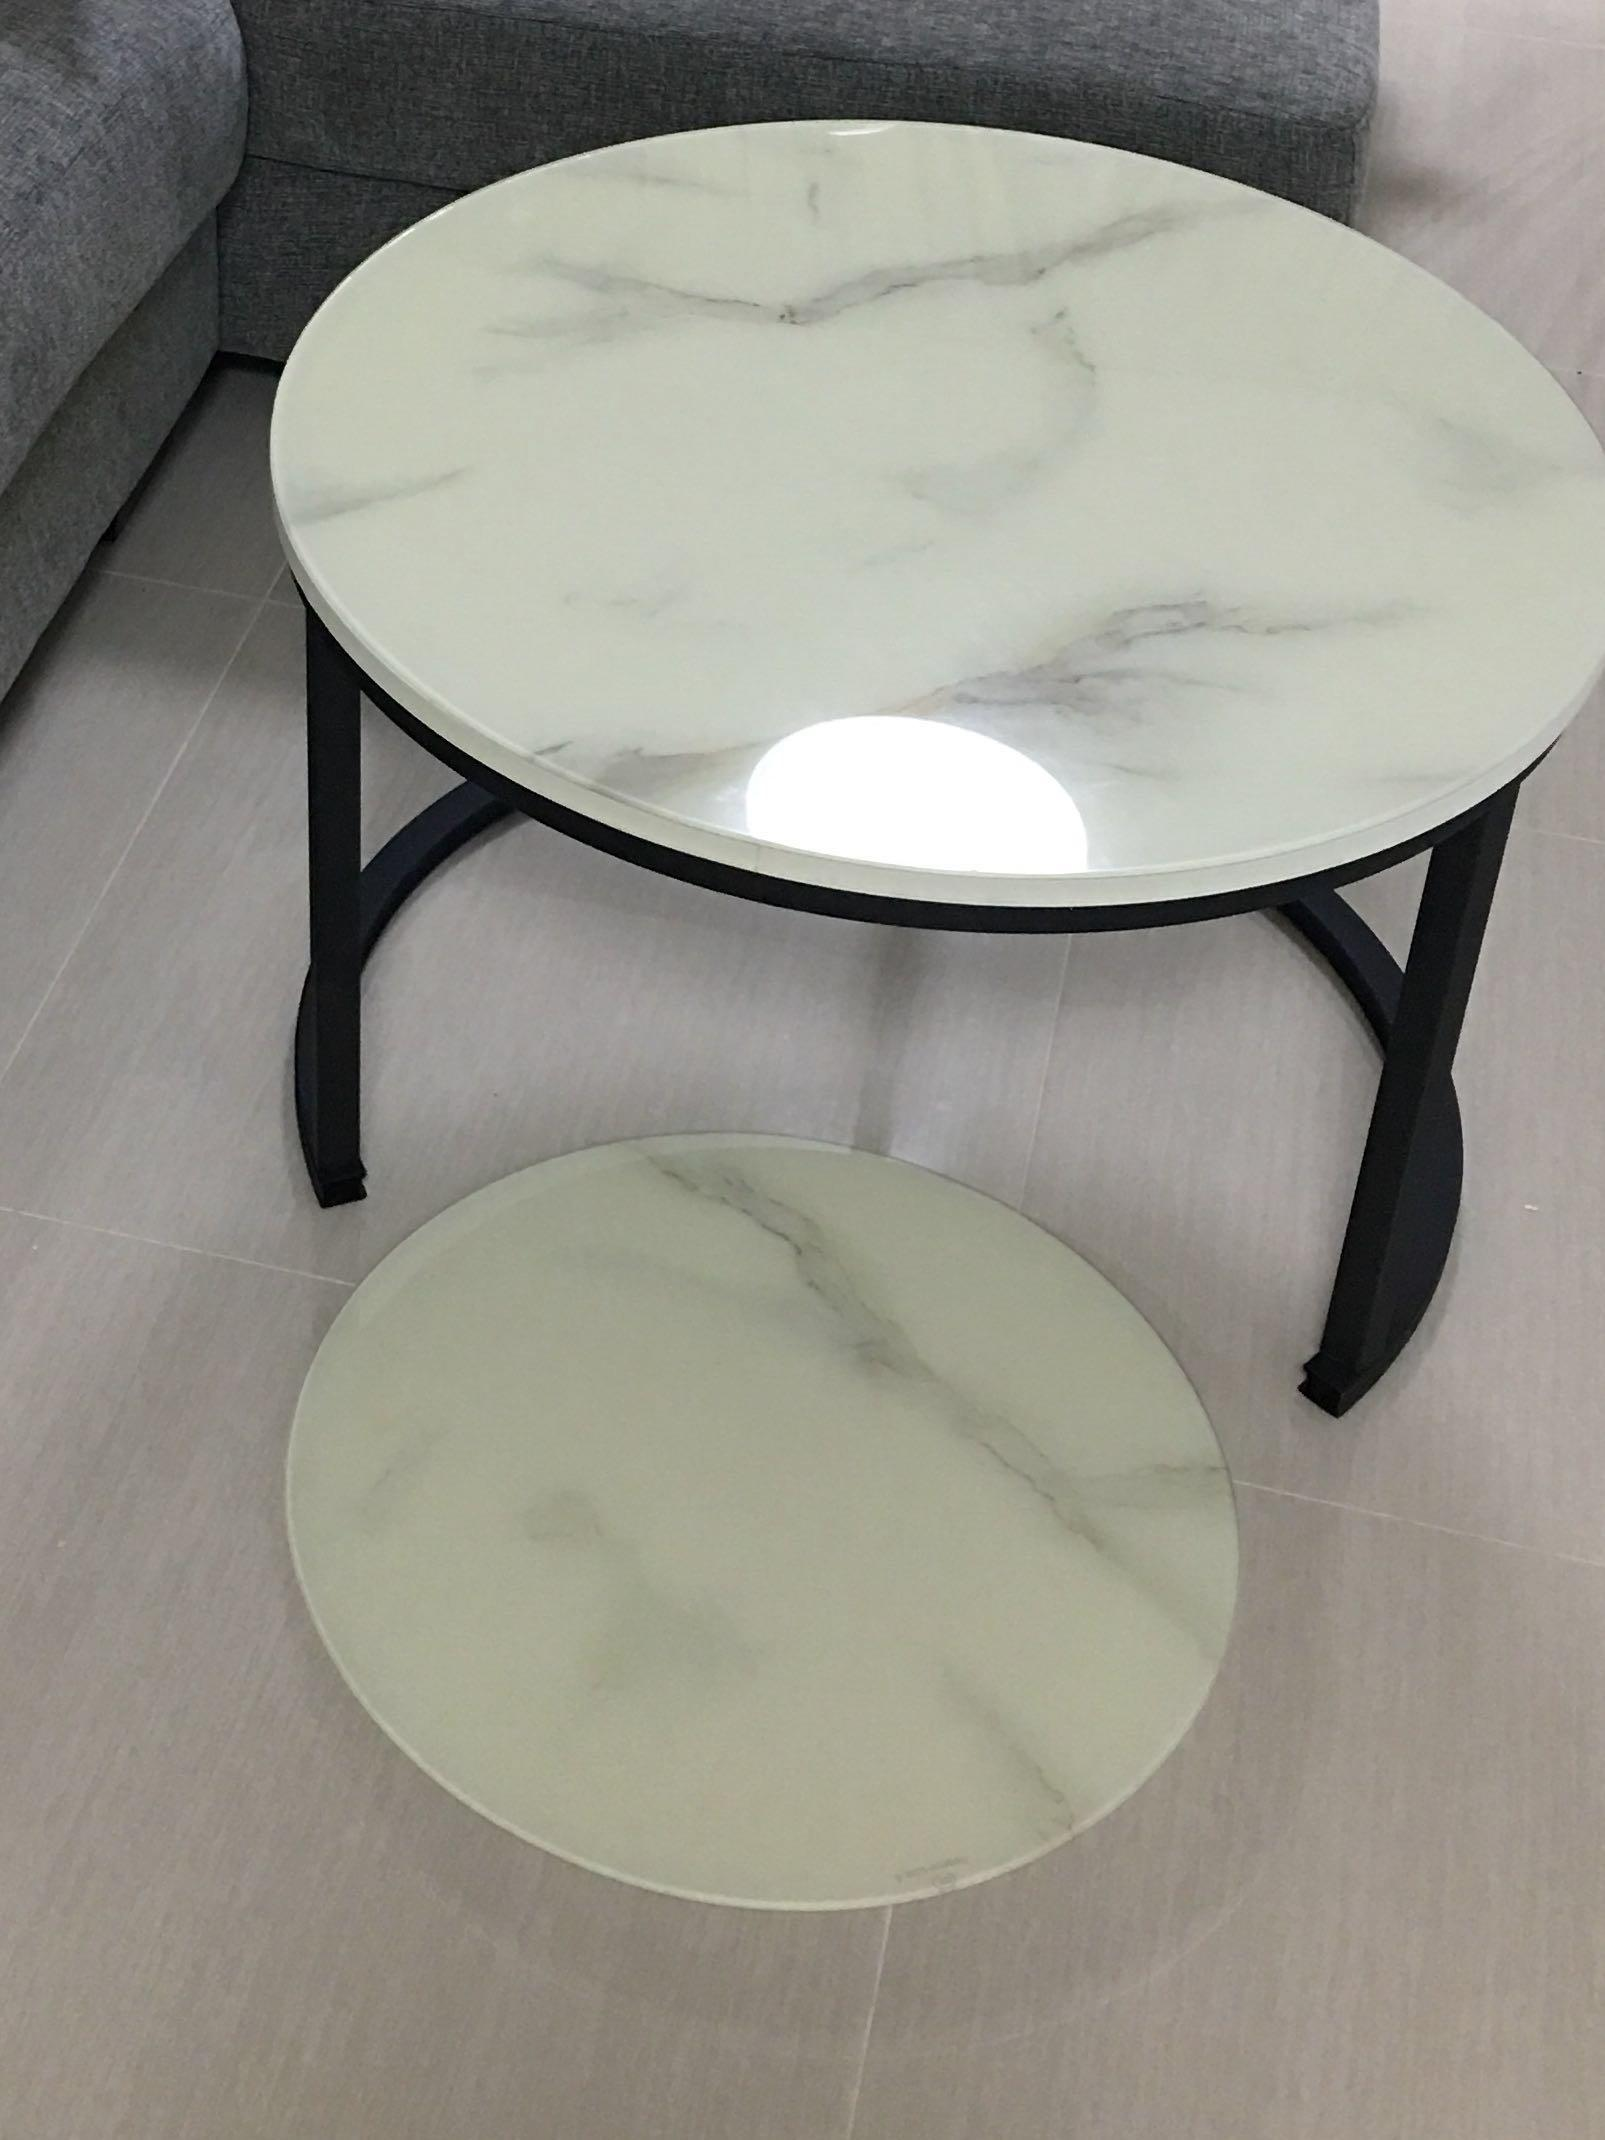 NOT marble Round Coffee Table - set of 2